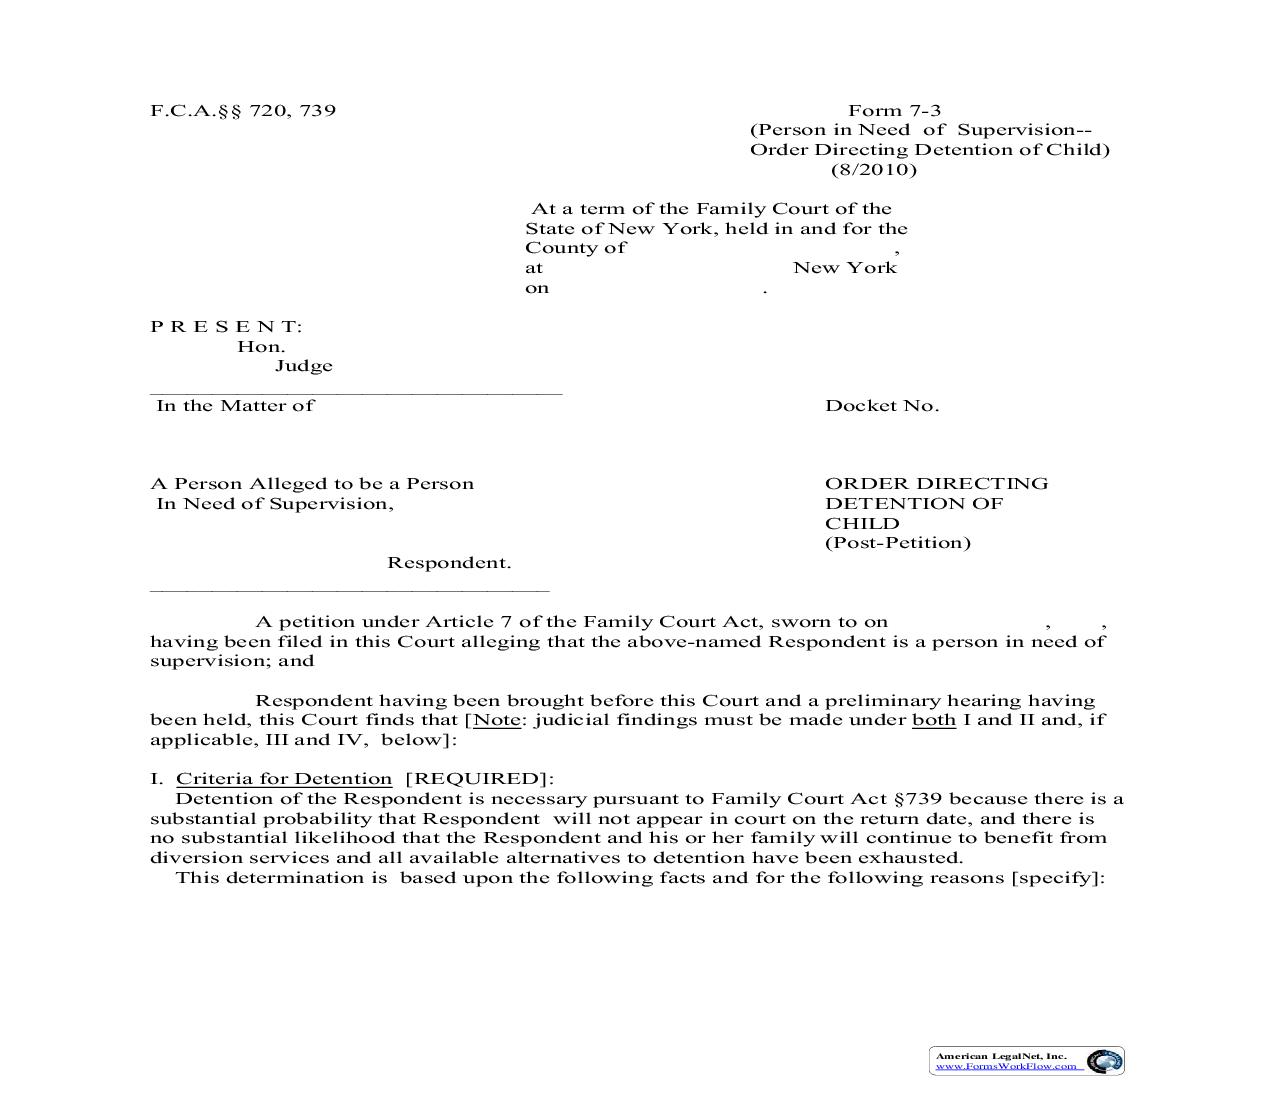 Order Directing Detention Of Child Post Petition {7-3}   Pdf Fpdf Doc Docx   New York